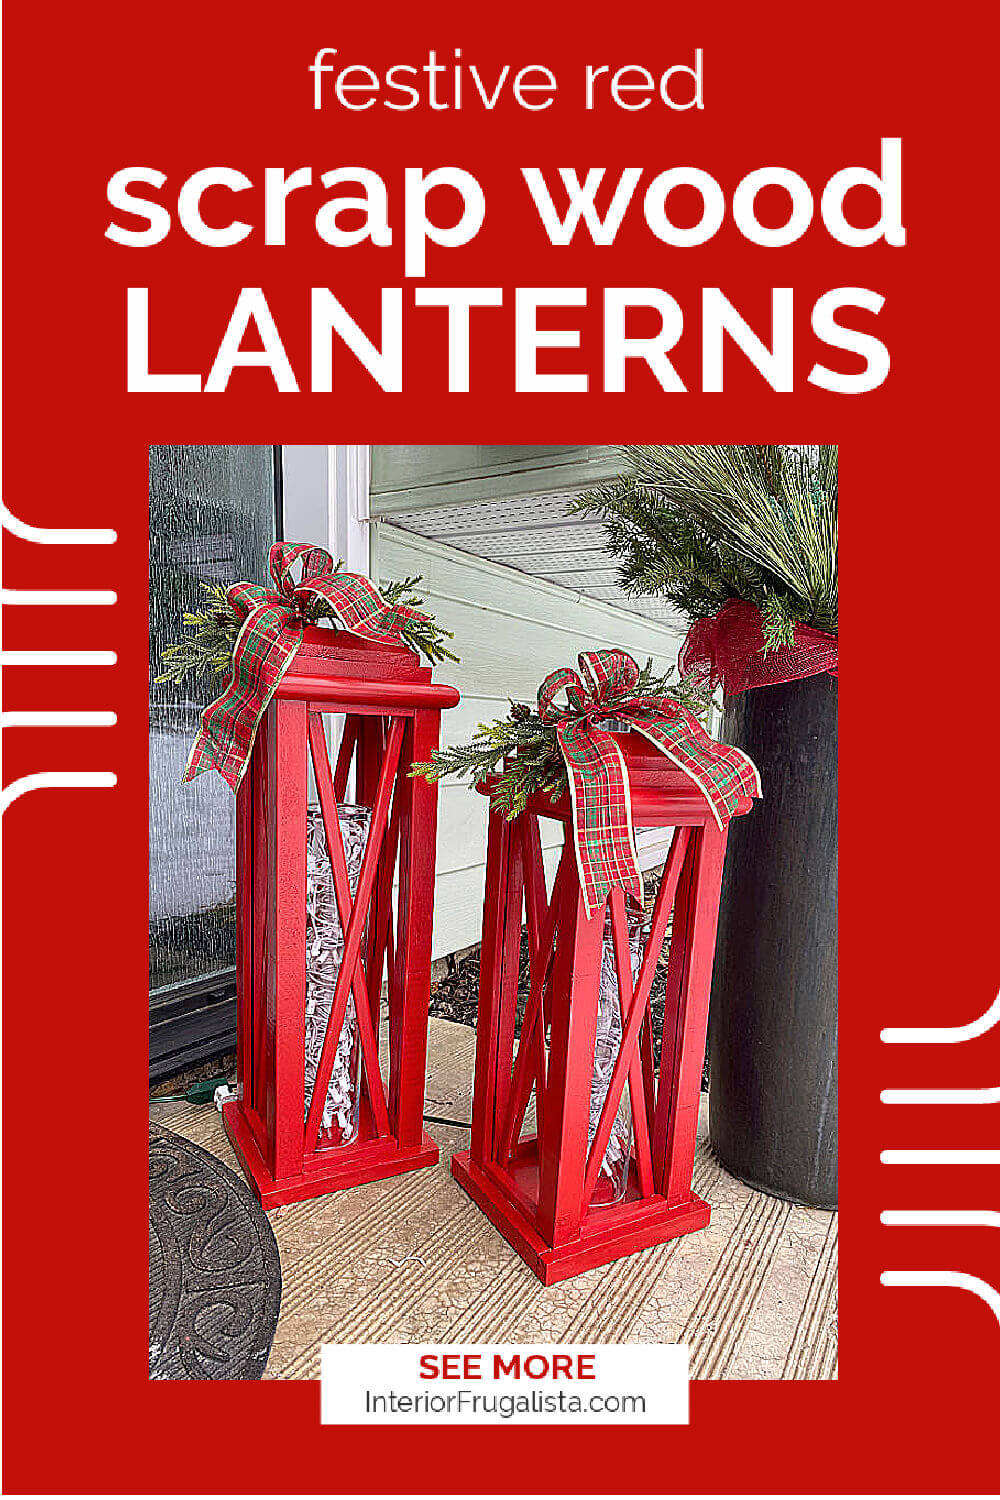 These large DIY Festive Red Scrap Wood Lanterns with farmhouse style are easy on the pocket book! Made with recycled materials they are gorgeous budget-friendly front porch Christmas decor on convenient set and forget light timers. #christmaslanterns #outdoorlanterns #frontporchchristmasdecor #diyrecycledlanterns